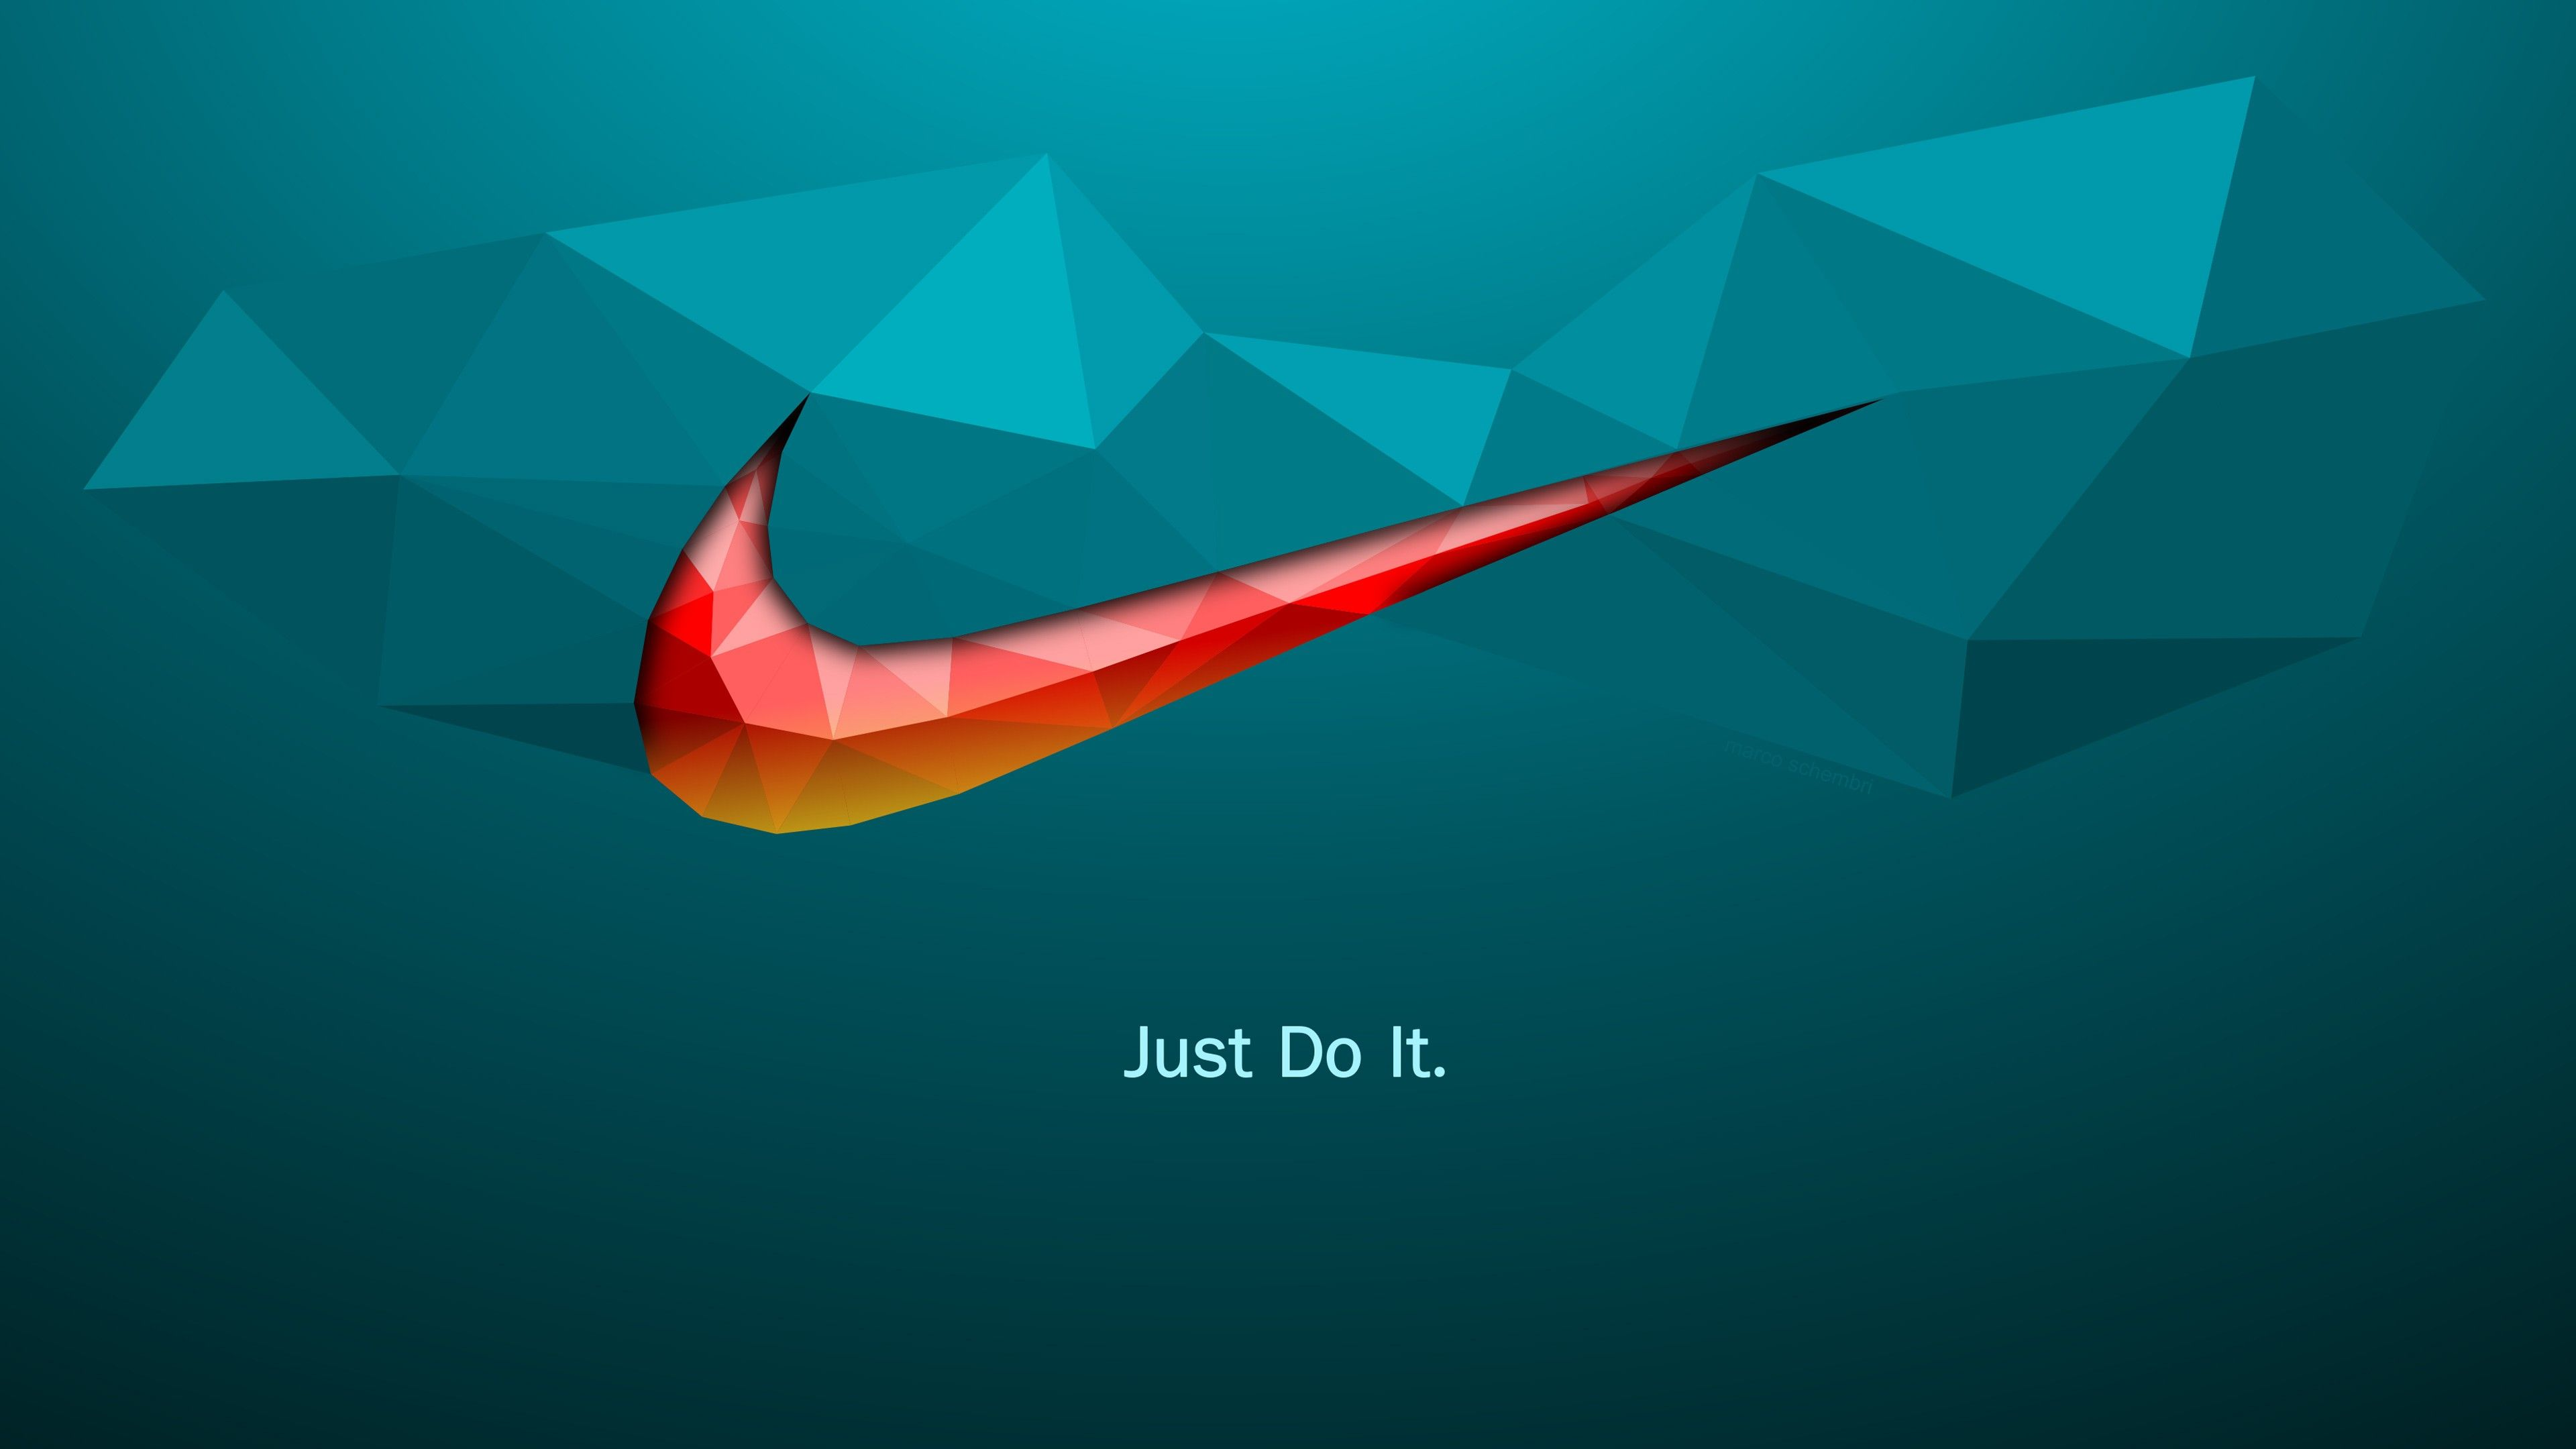 Nike Just Do It Wallpapers Top Free Nike Just Do It Backgrounds